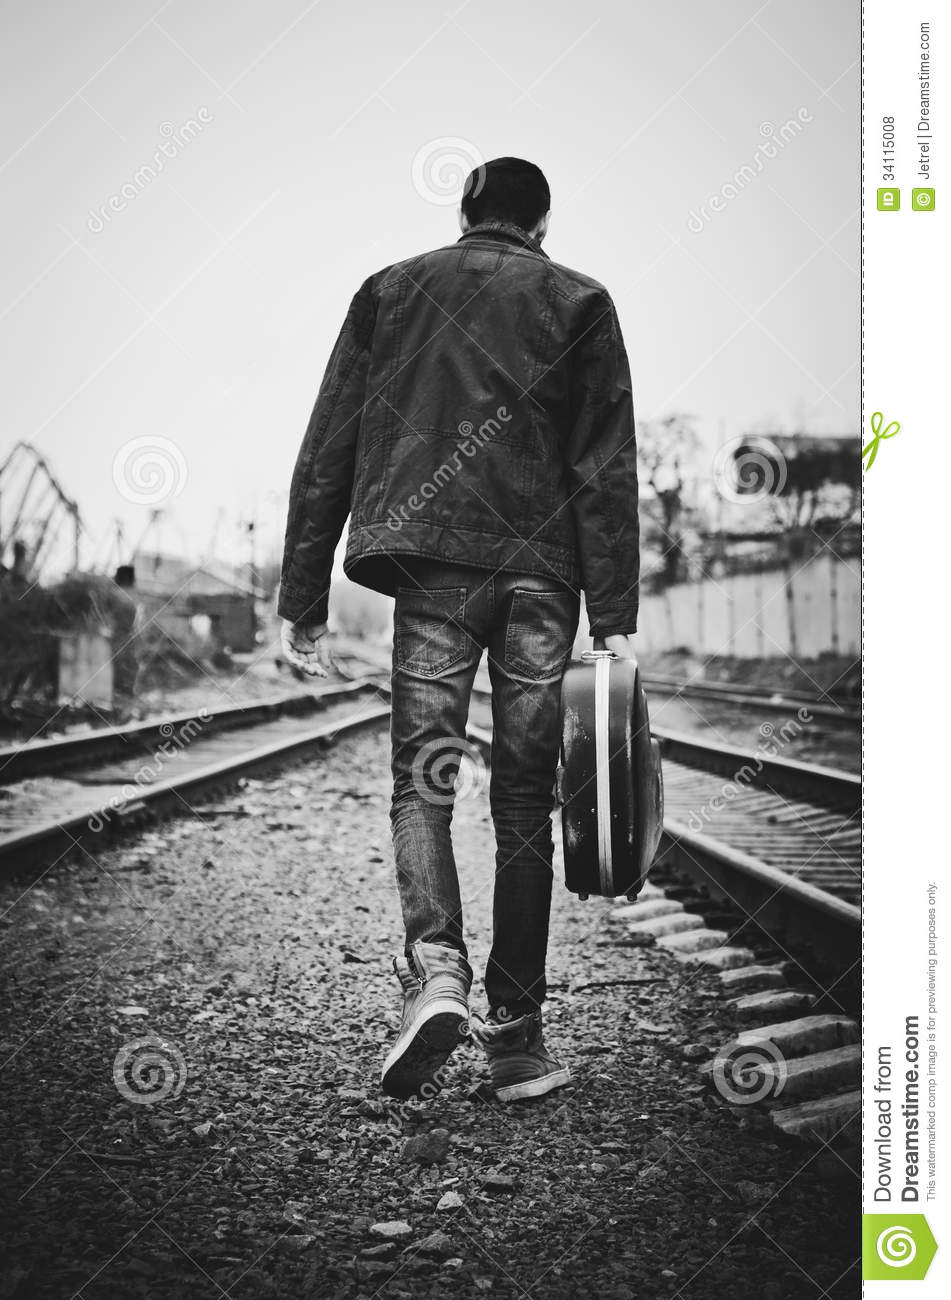 Girl Walking Alone Hd Wallpapers Young Man With Guitar Case In Hand Is Going Away Rear